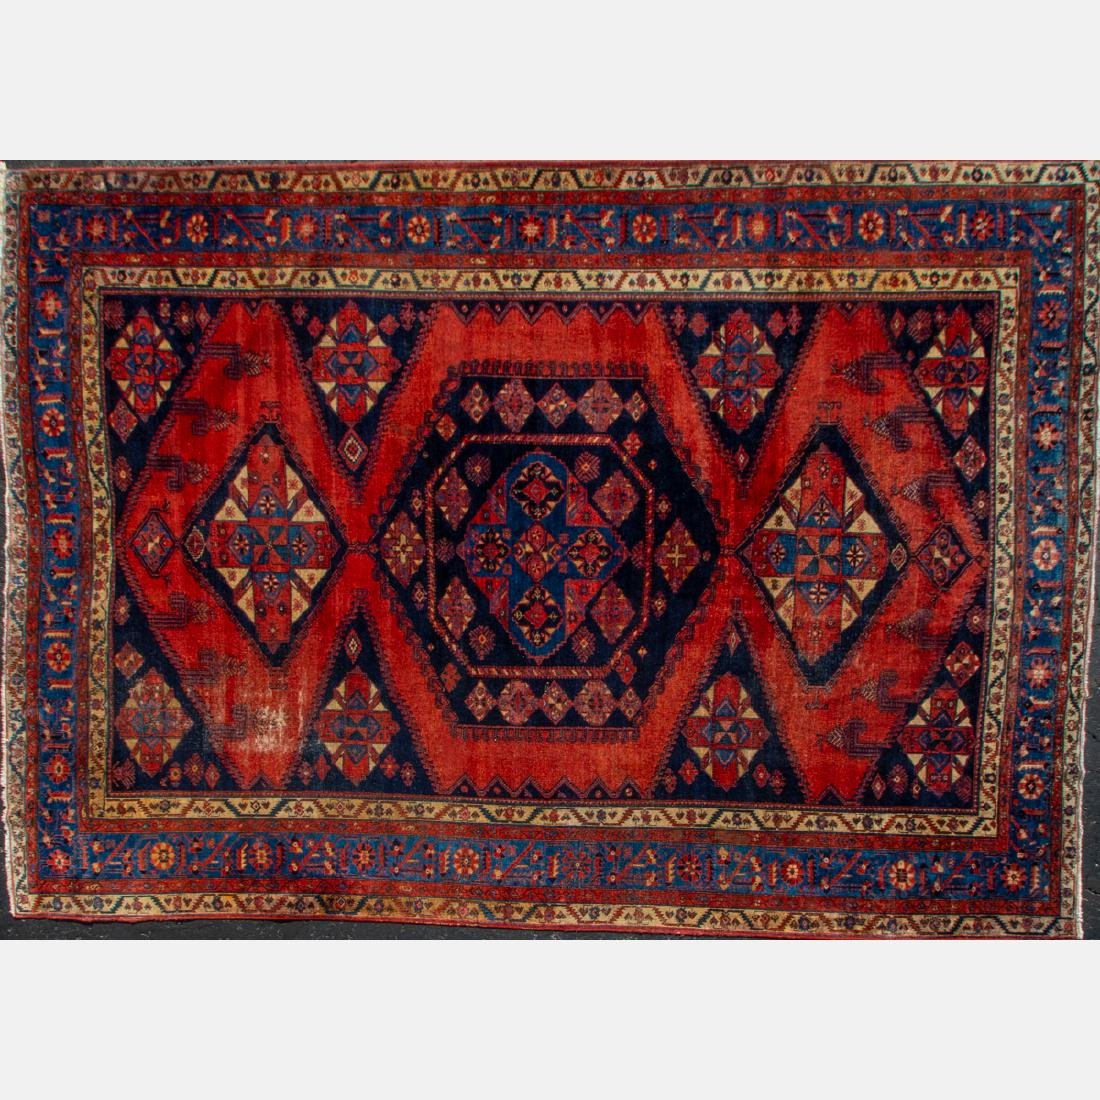 A Northwest Persian Wool Rug, 20th Century,